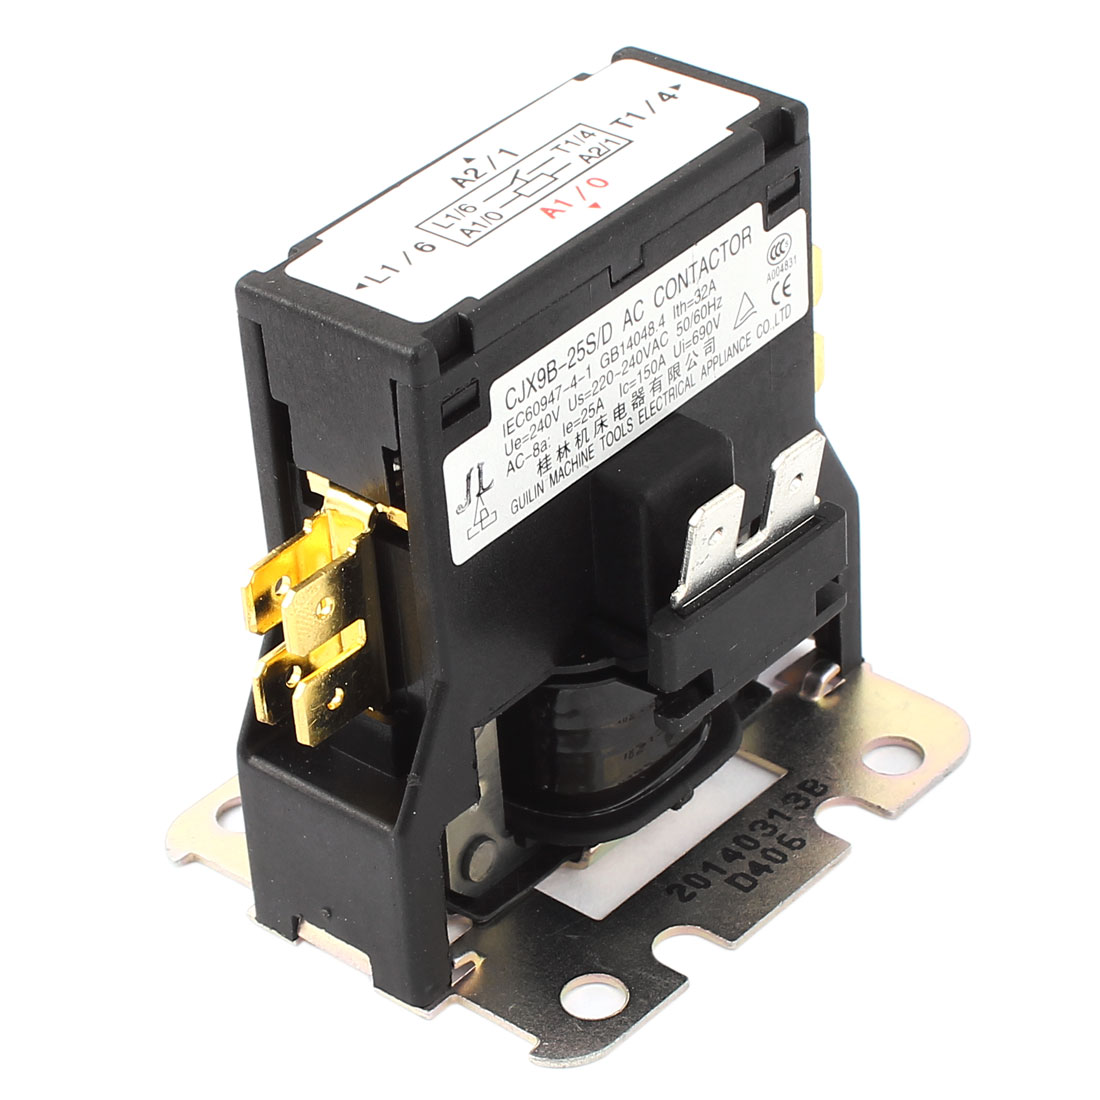 CJX9B-25S/D AC 220-240V Single Phase Air Conditioner Coil Magnetic Contactor